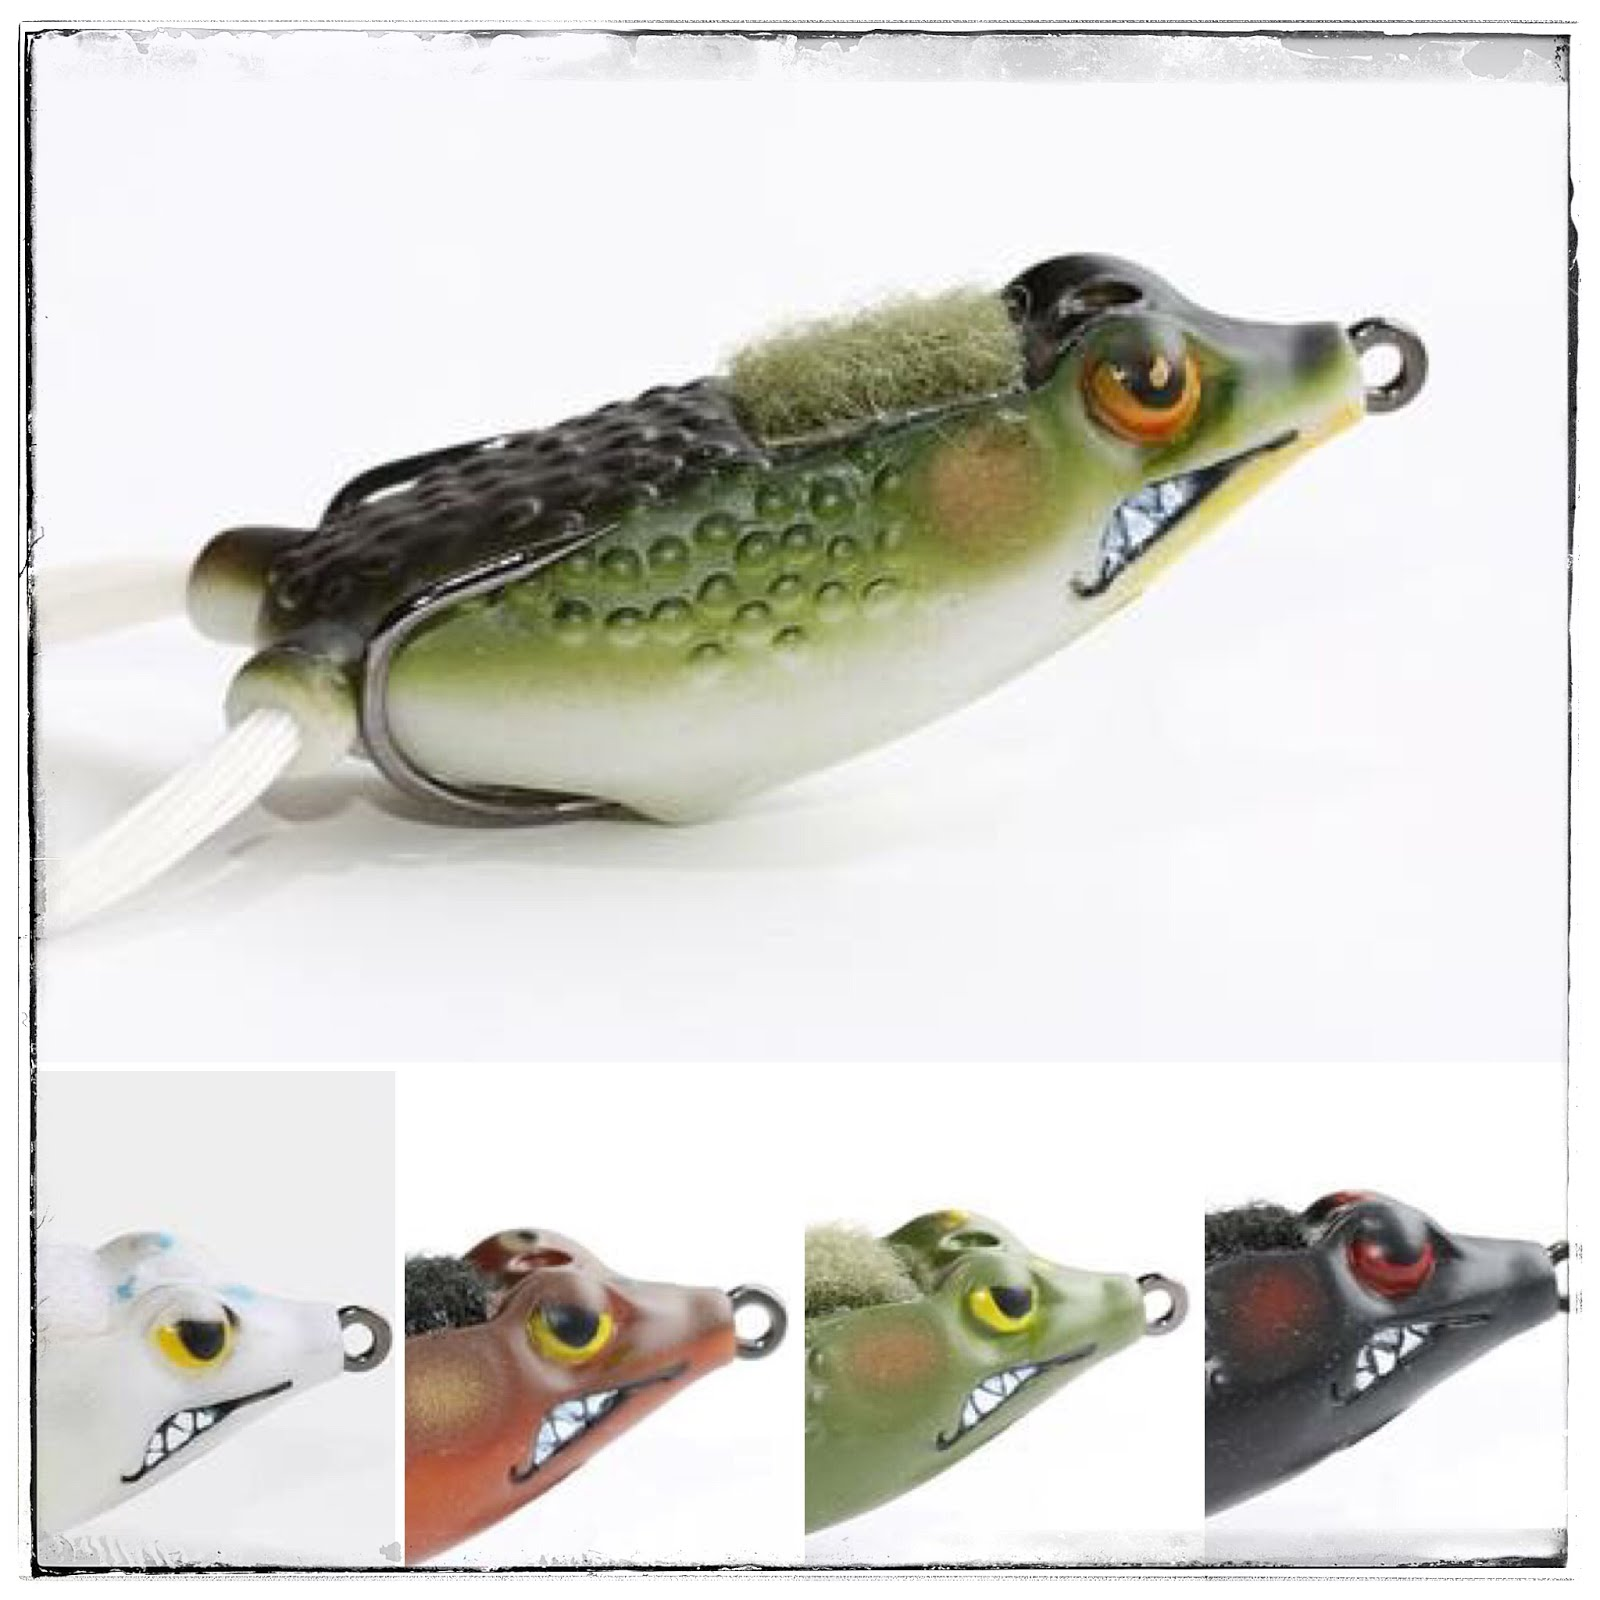 Bass junkies frog pond for Frog bait fishing